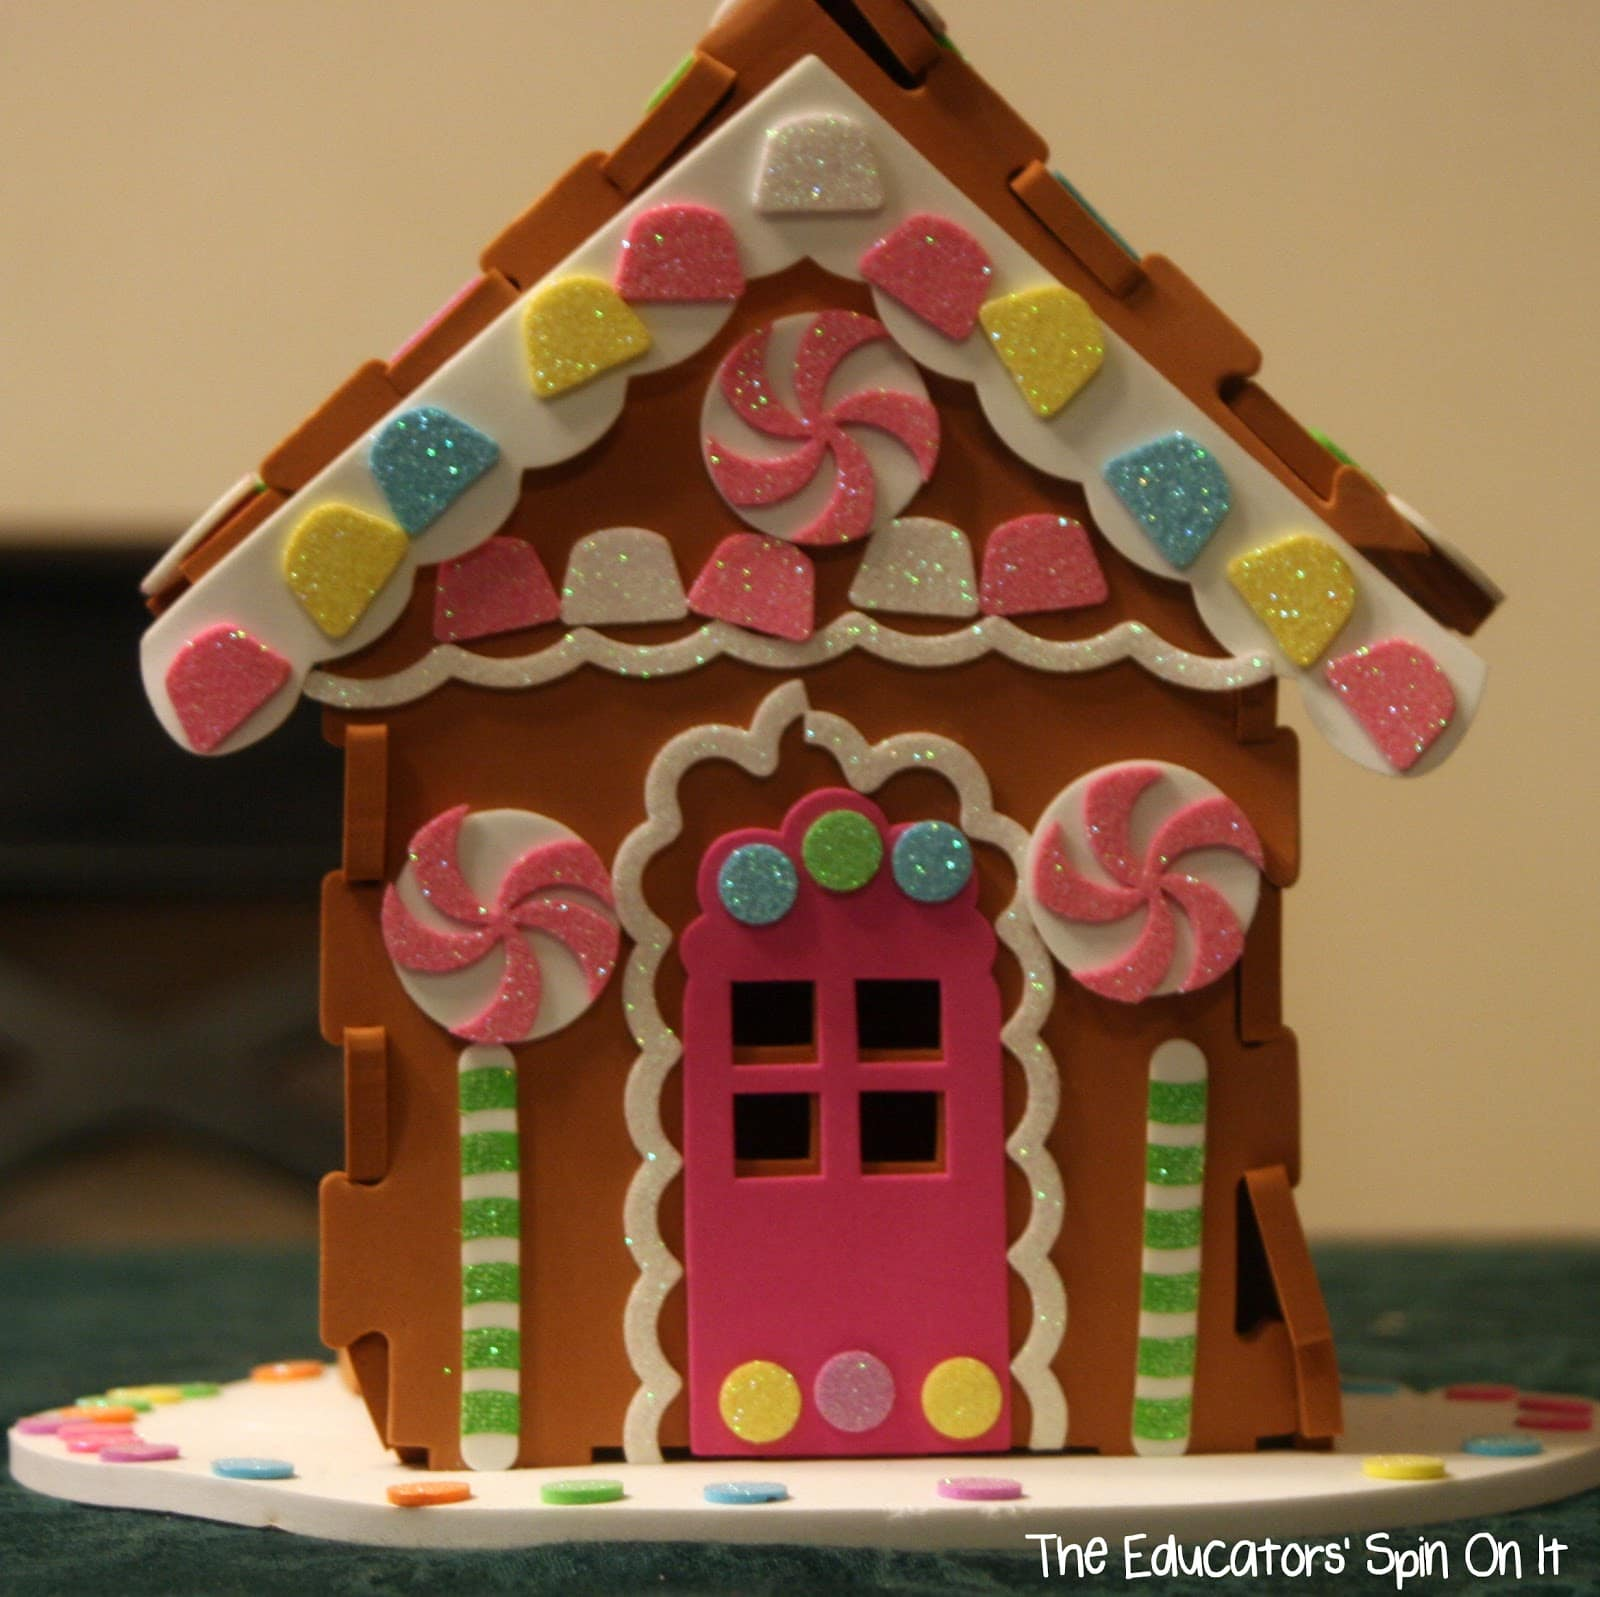 Make Your Own Foam Gingerbread House New In Box